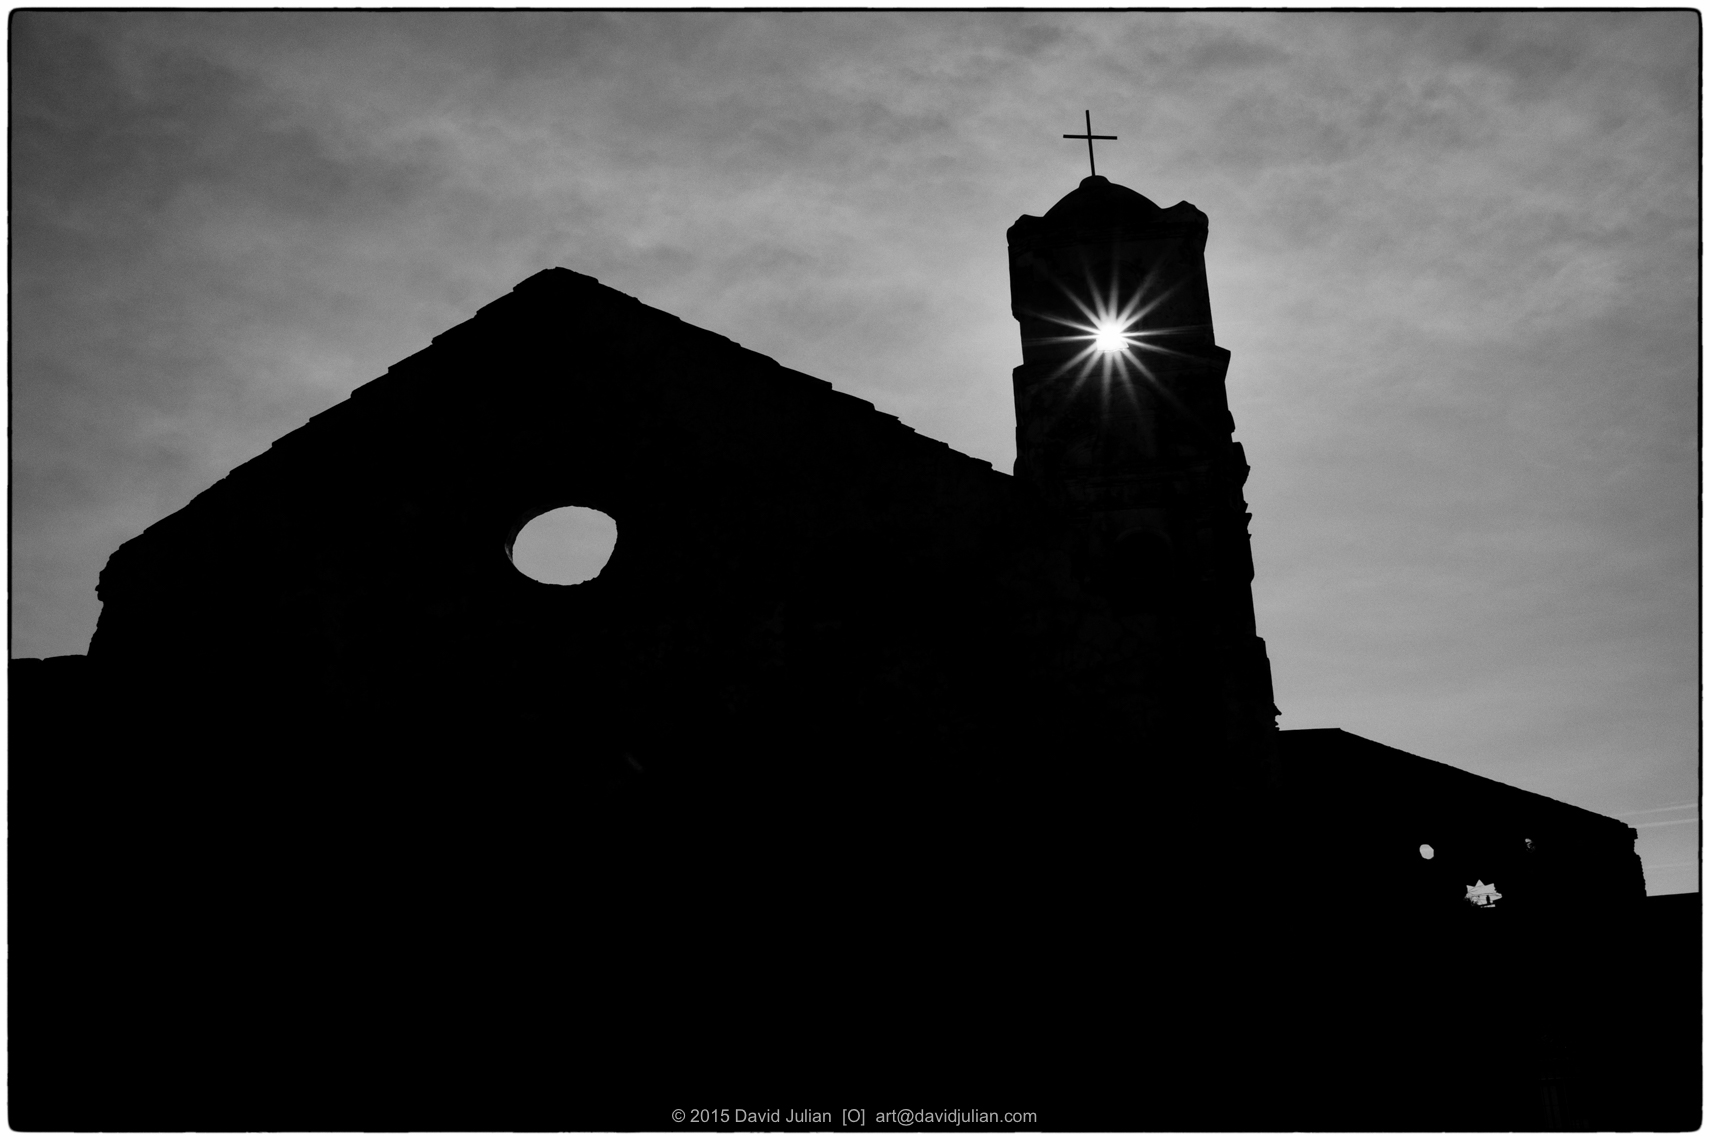 CUBA, TRINIDAD-sunspot-church